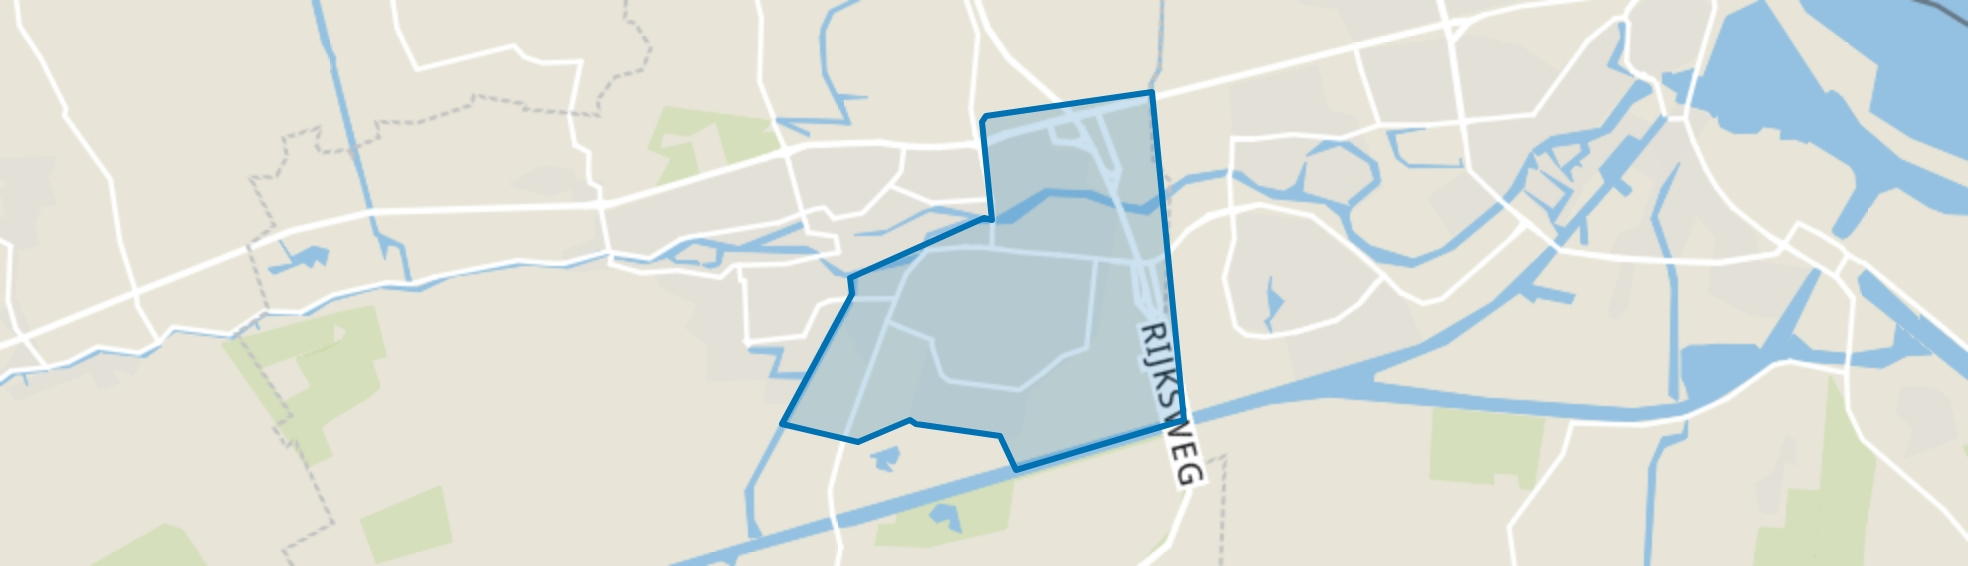 Appingedam-Oost, Appingedam map